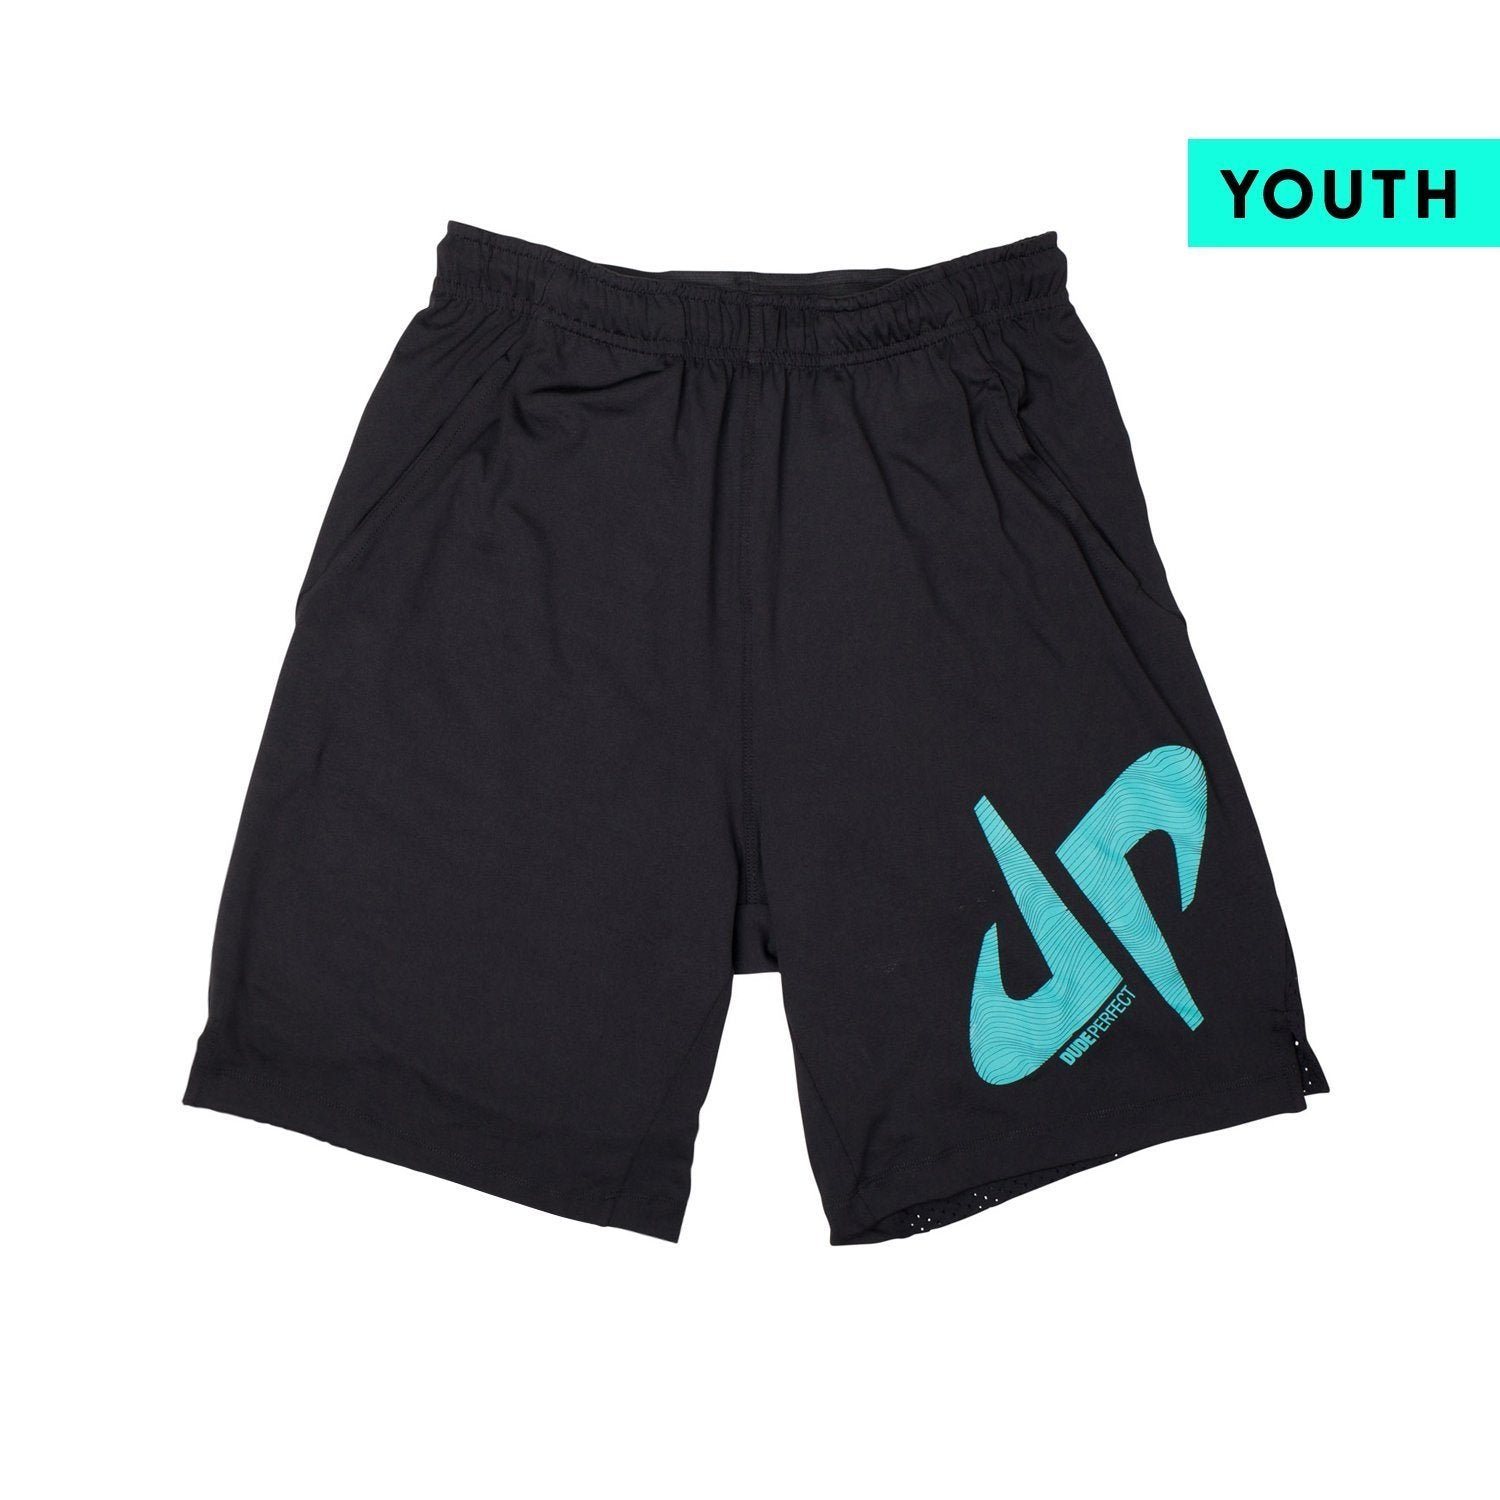 Youth Performance Shorts // Black + Green